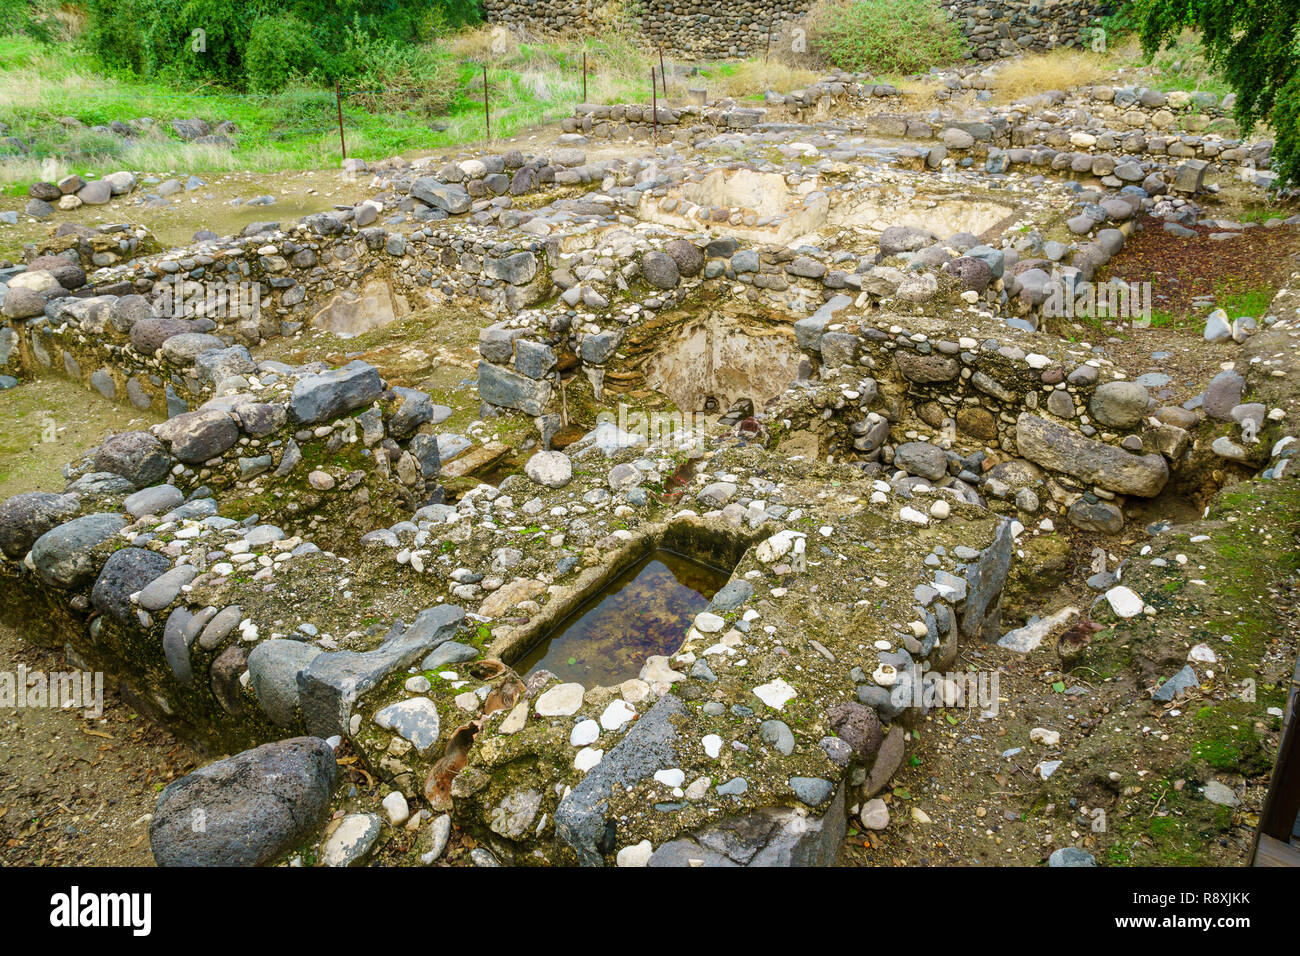 Remains of a Byzantine bathhouse, in Kursi National Park, Golan Heights, Northern Israel - Stock Image